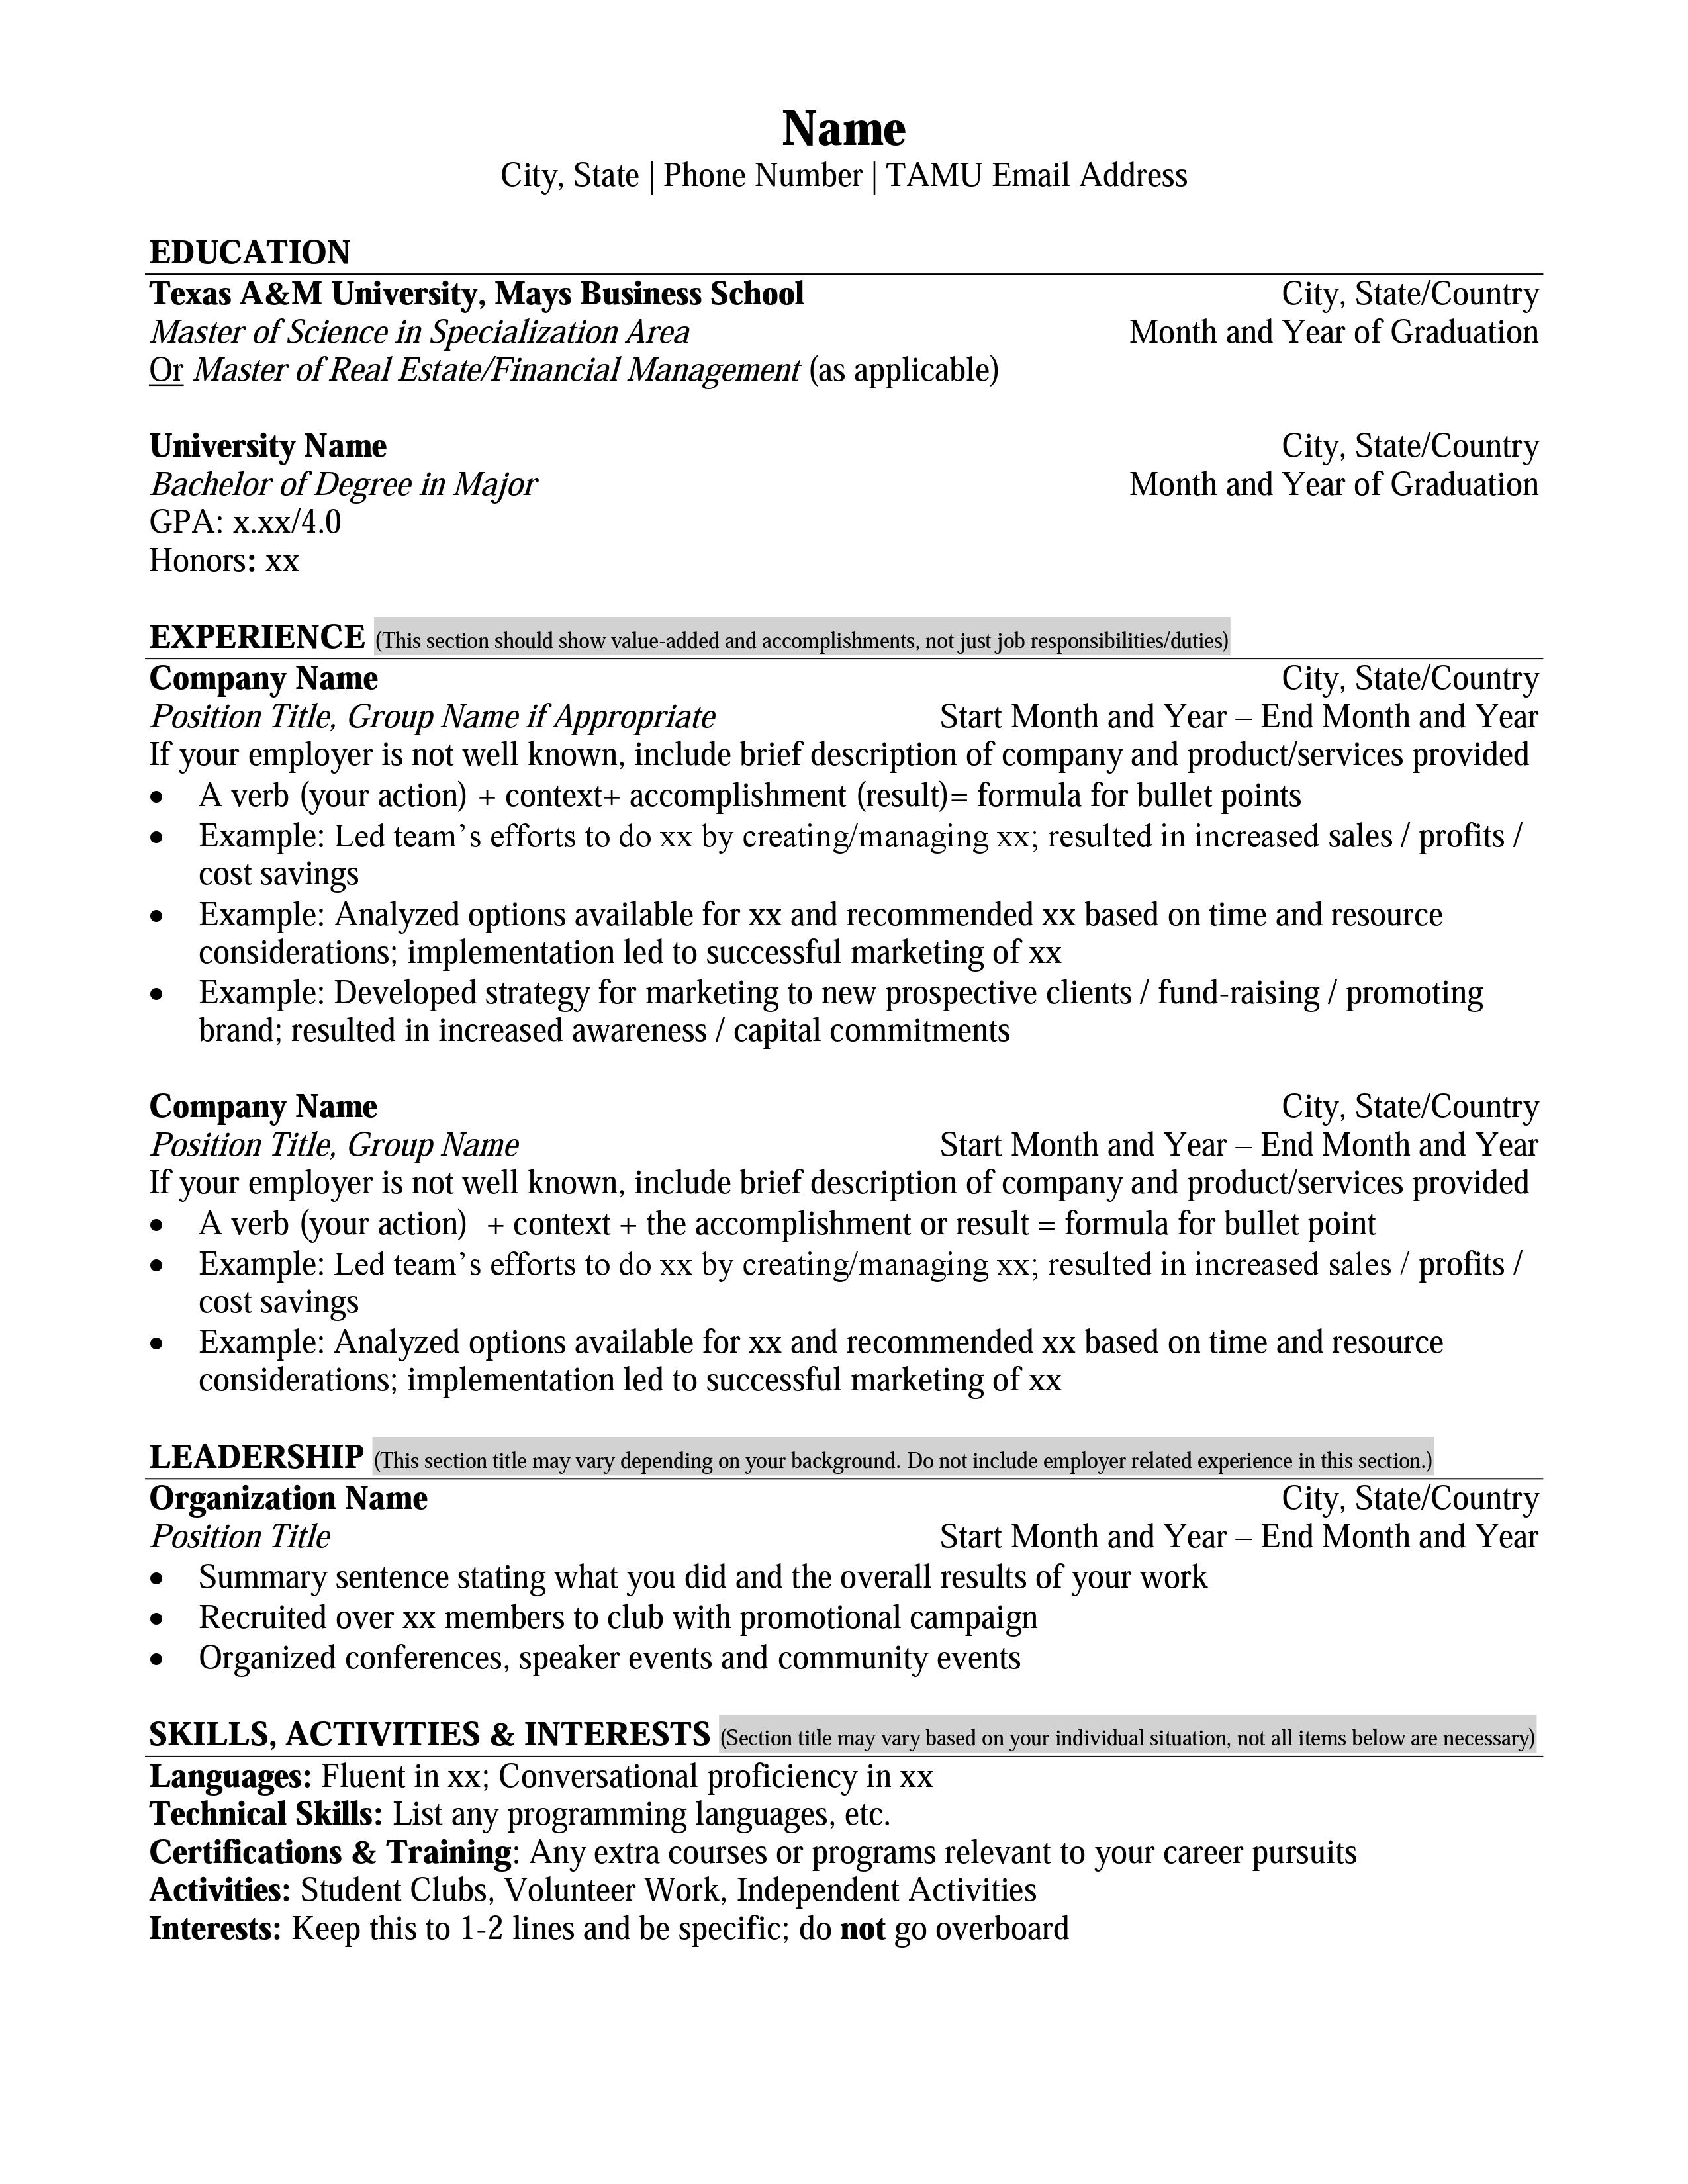 Mays Masters Resume Format Career Management Center Mays Business School